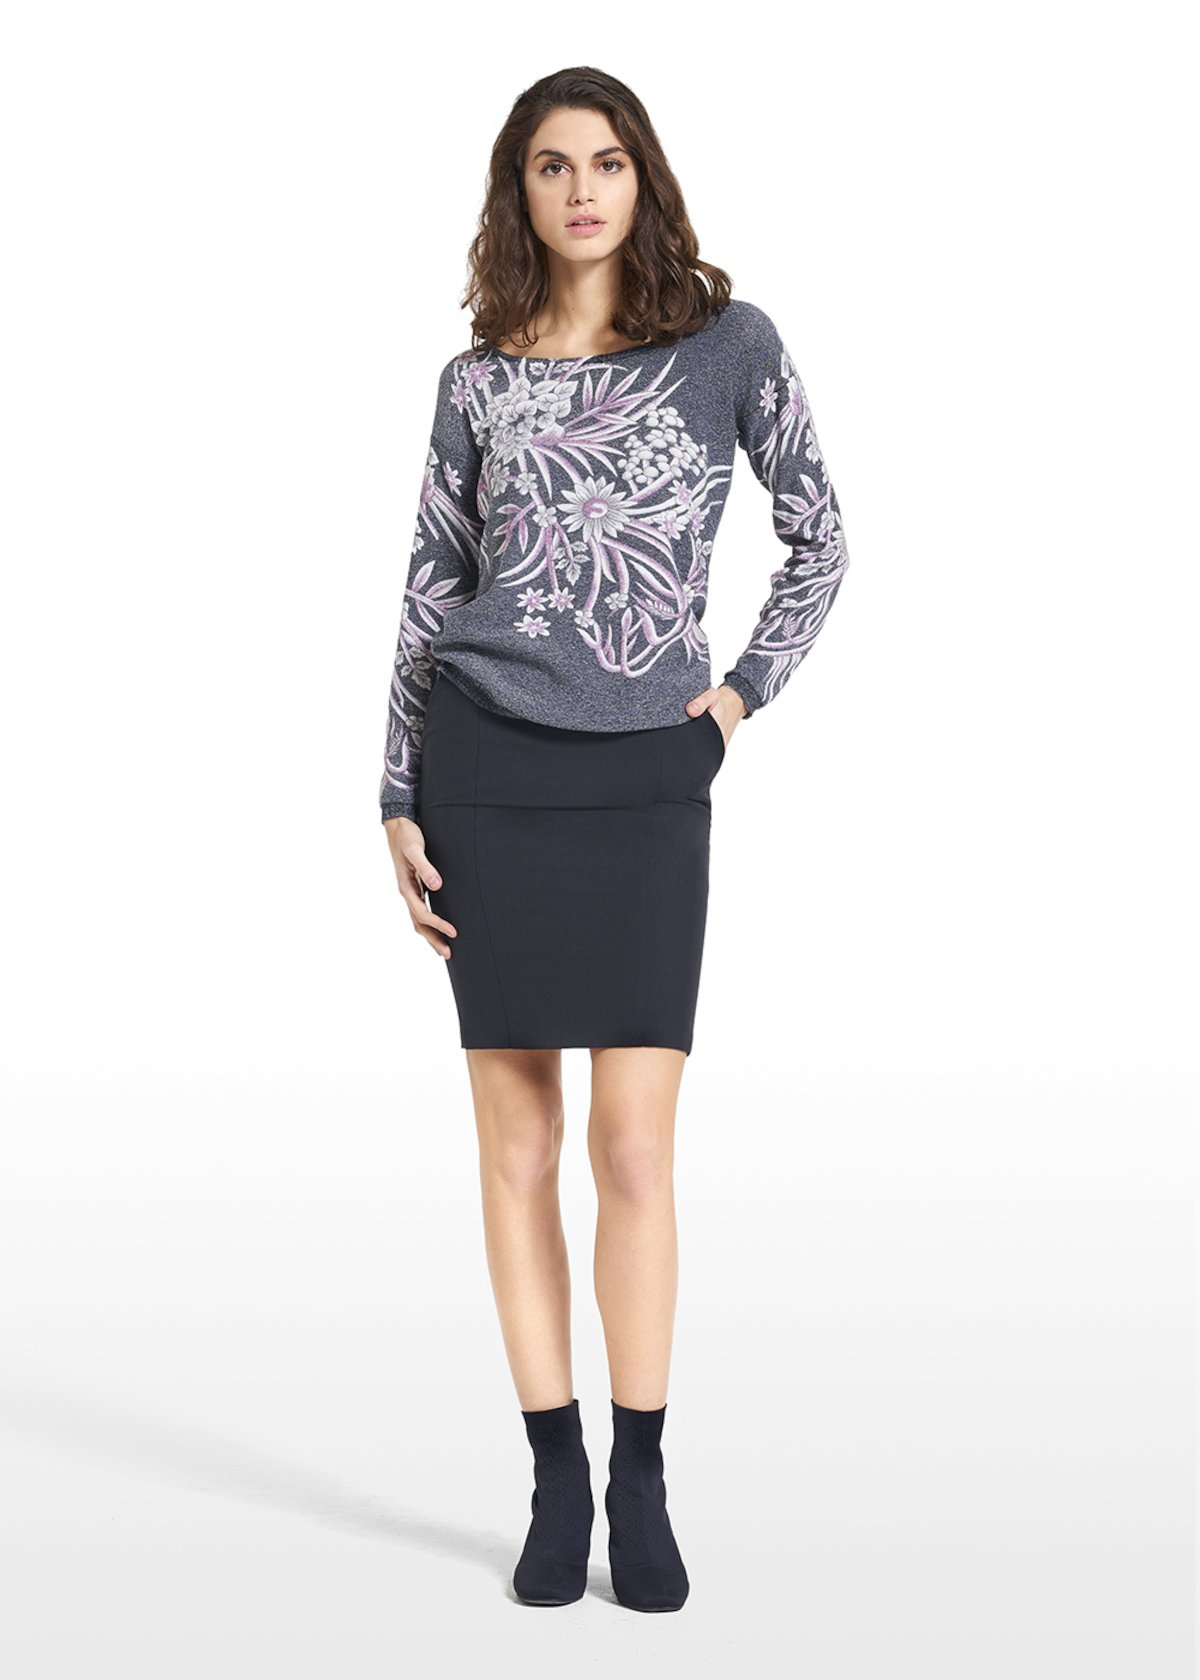 Sweater Mamy with Madonna neckline and floral pattern. - Blue Fantasia - Woman